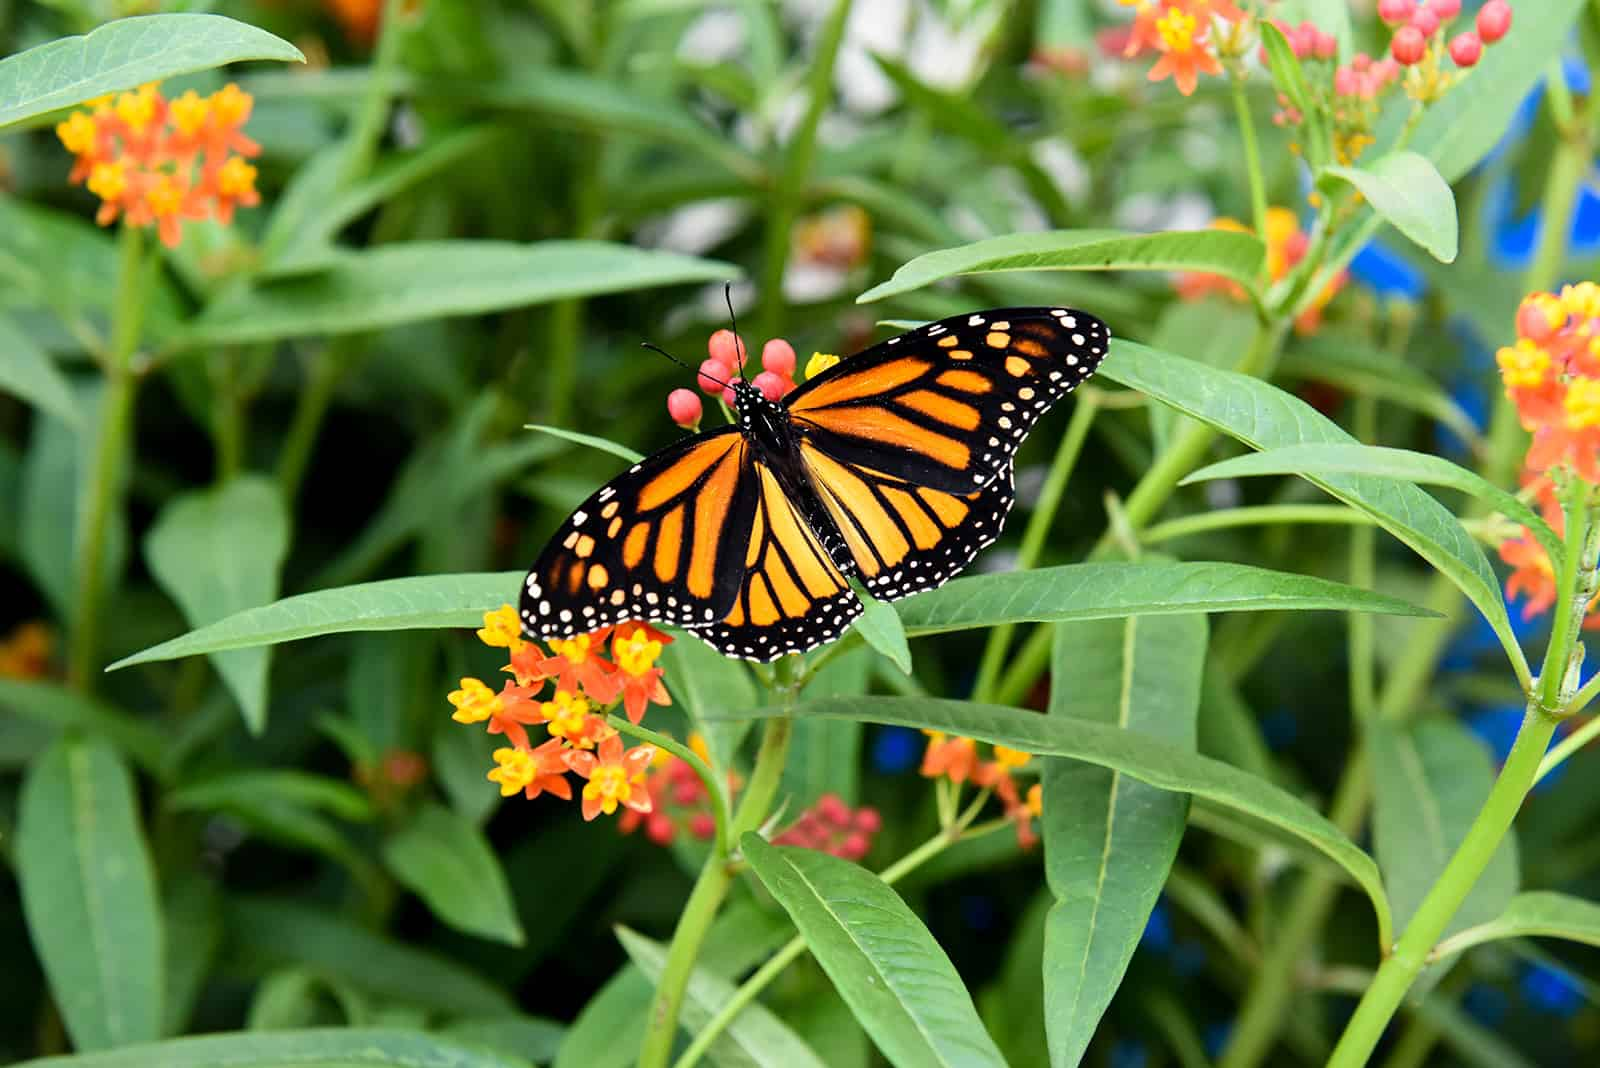 Discount coupons for butterfly conservatory cambridge